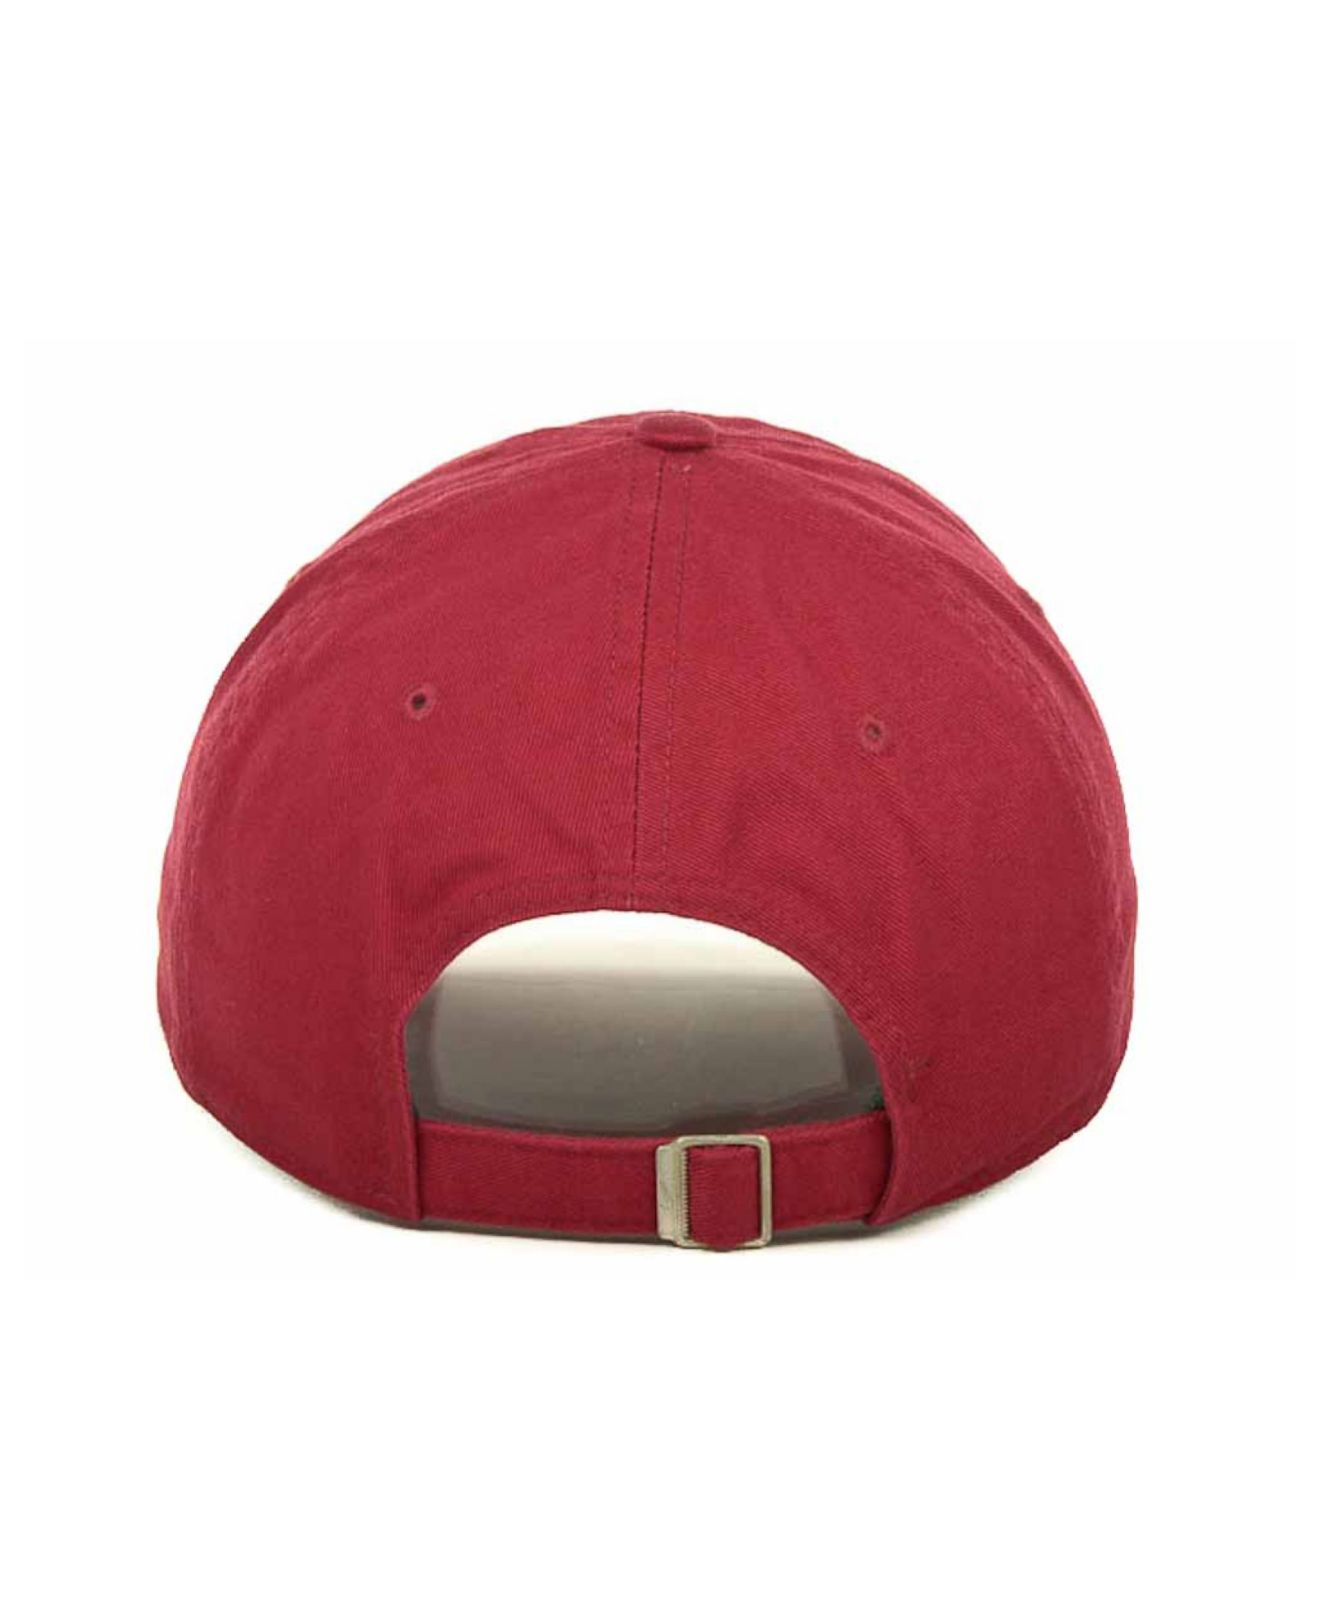 9dadd43c213 Lyst - Nike Usc Trojans Heritage 86 Campus Cap in Red for Men